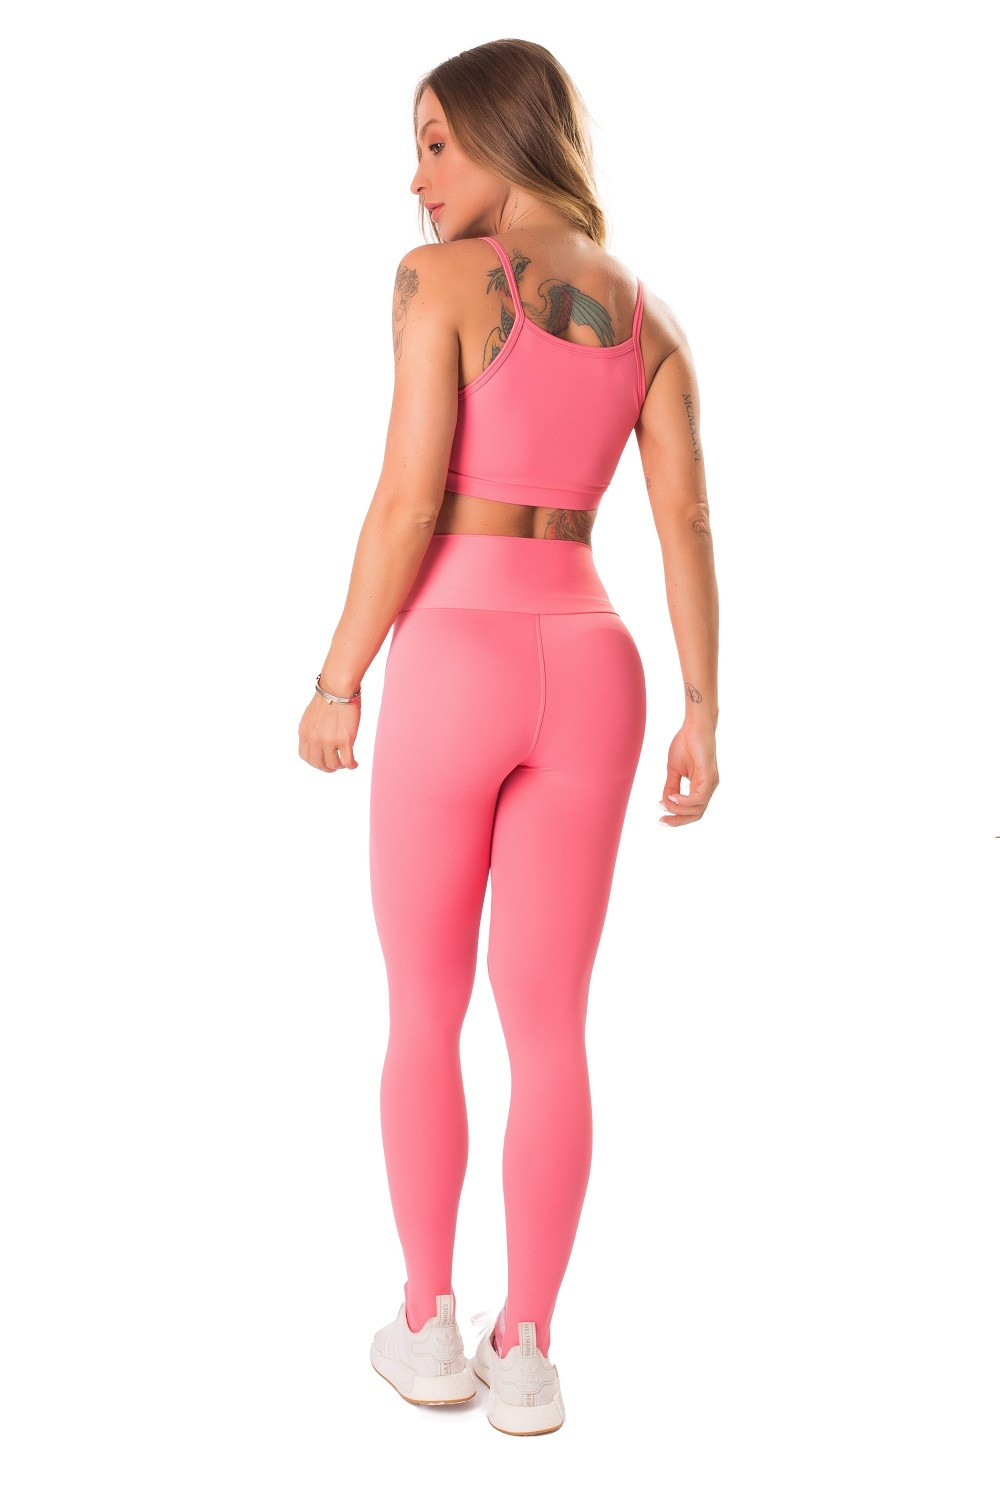 TOP MYSTIC FIT CORAL LETSGYM